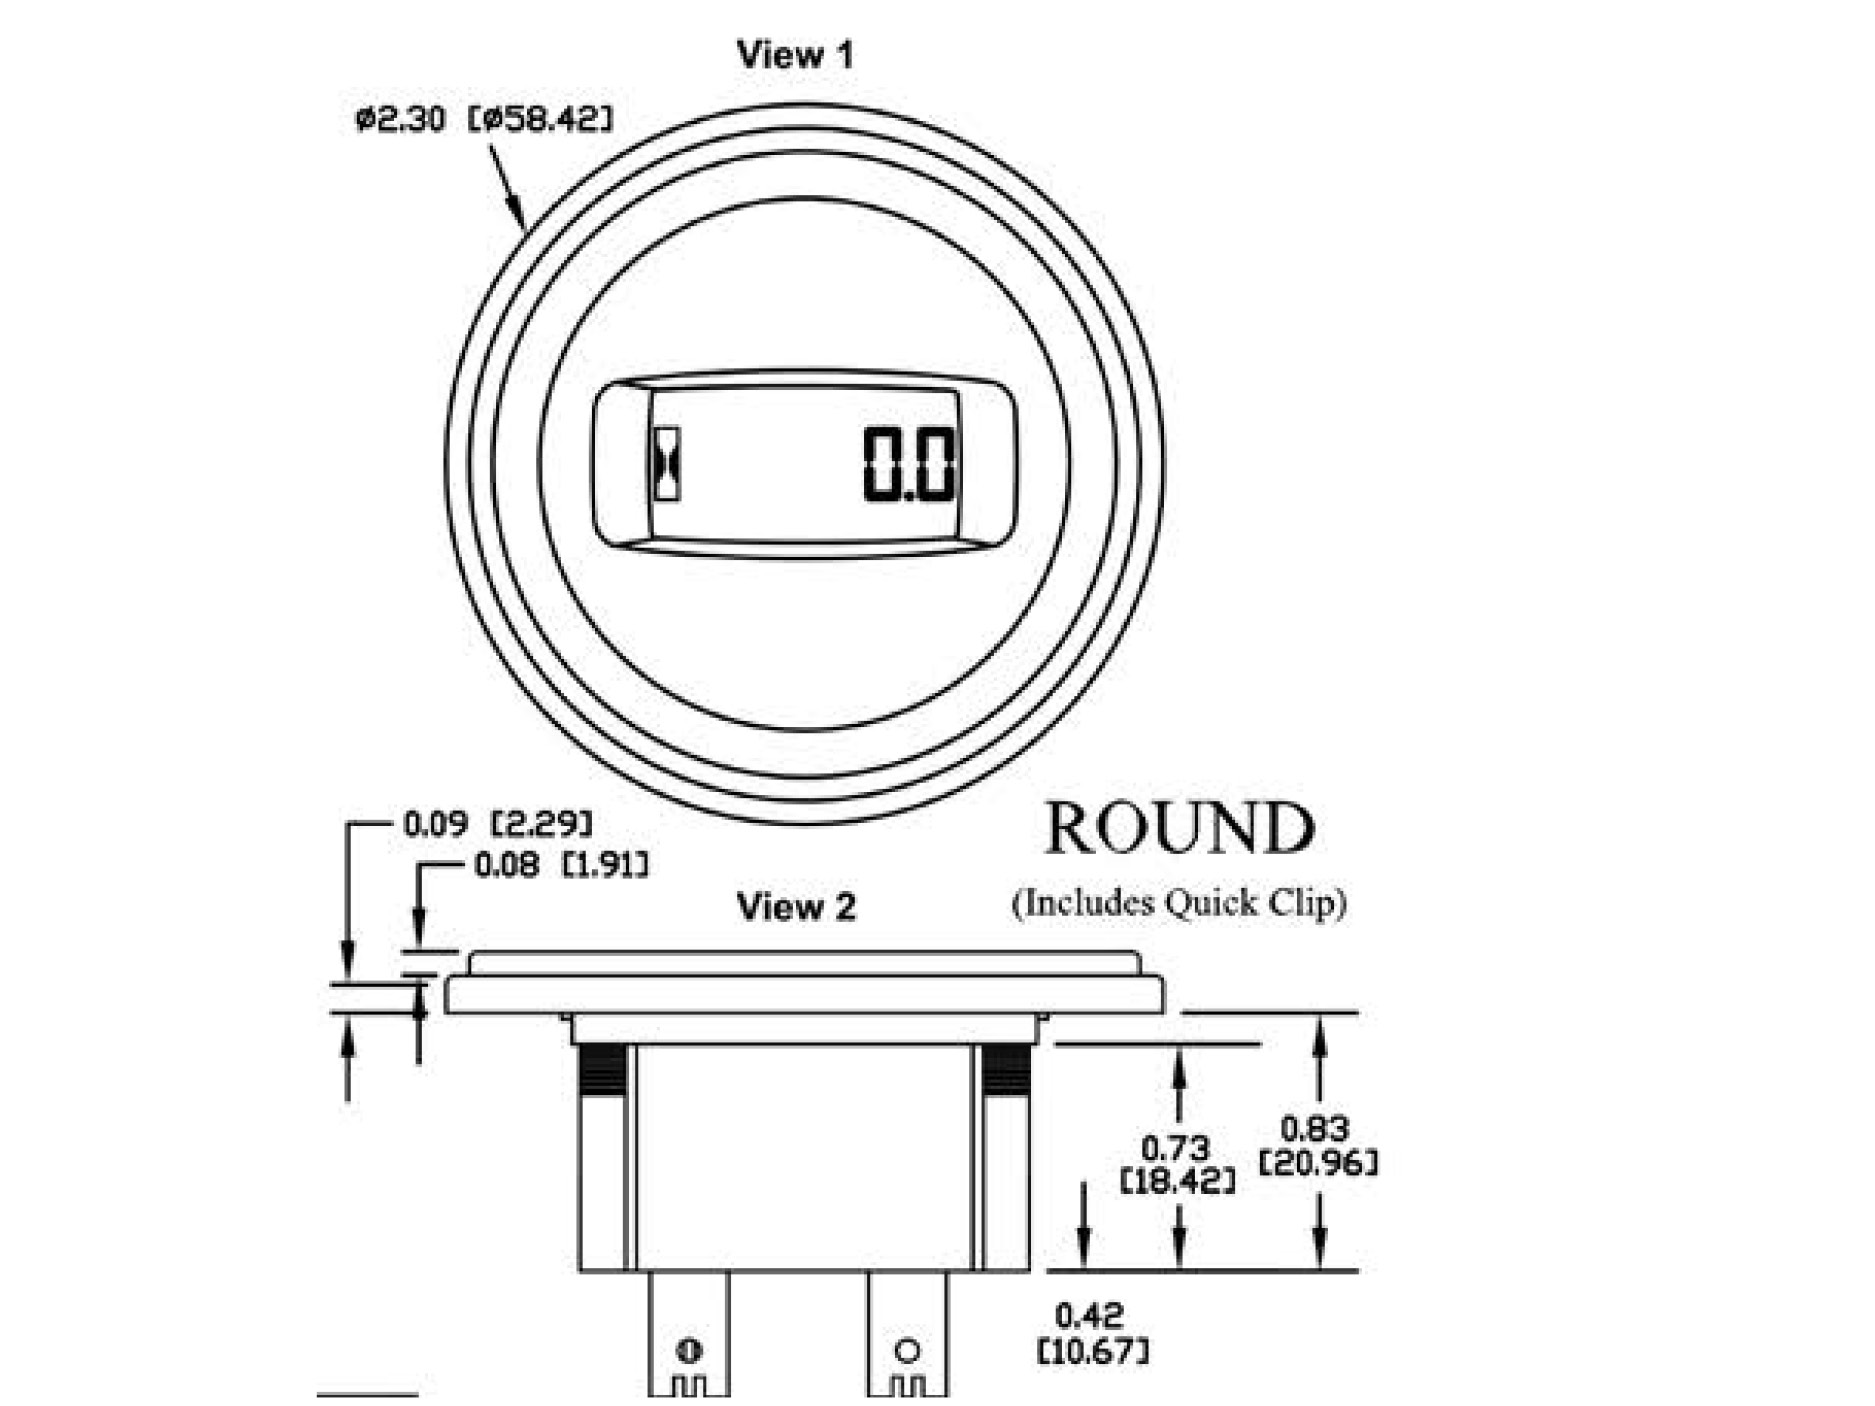 N530 Round Dimensions drawing